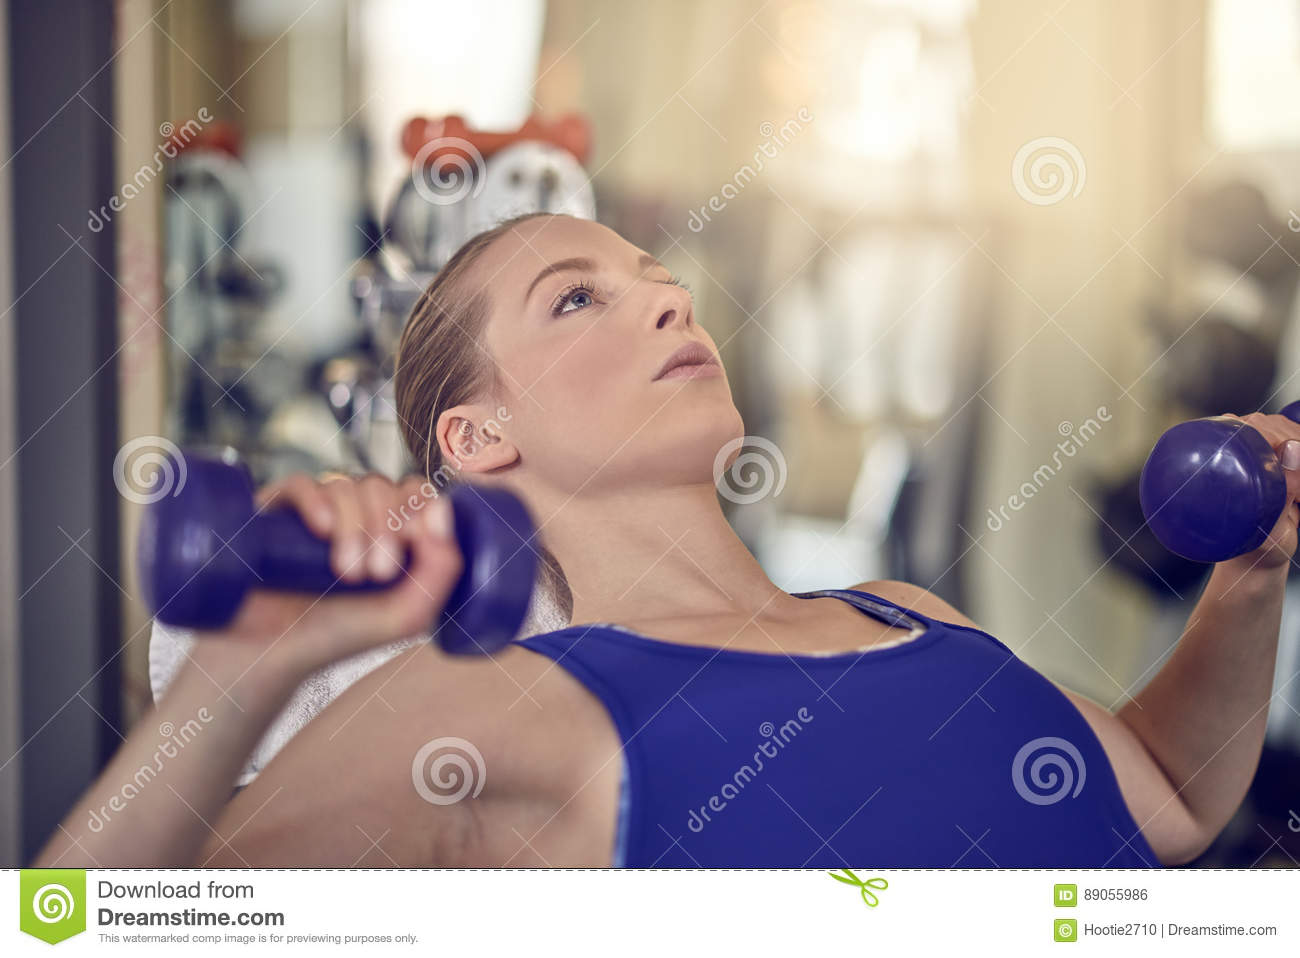 Attractive young woman working out in a gym